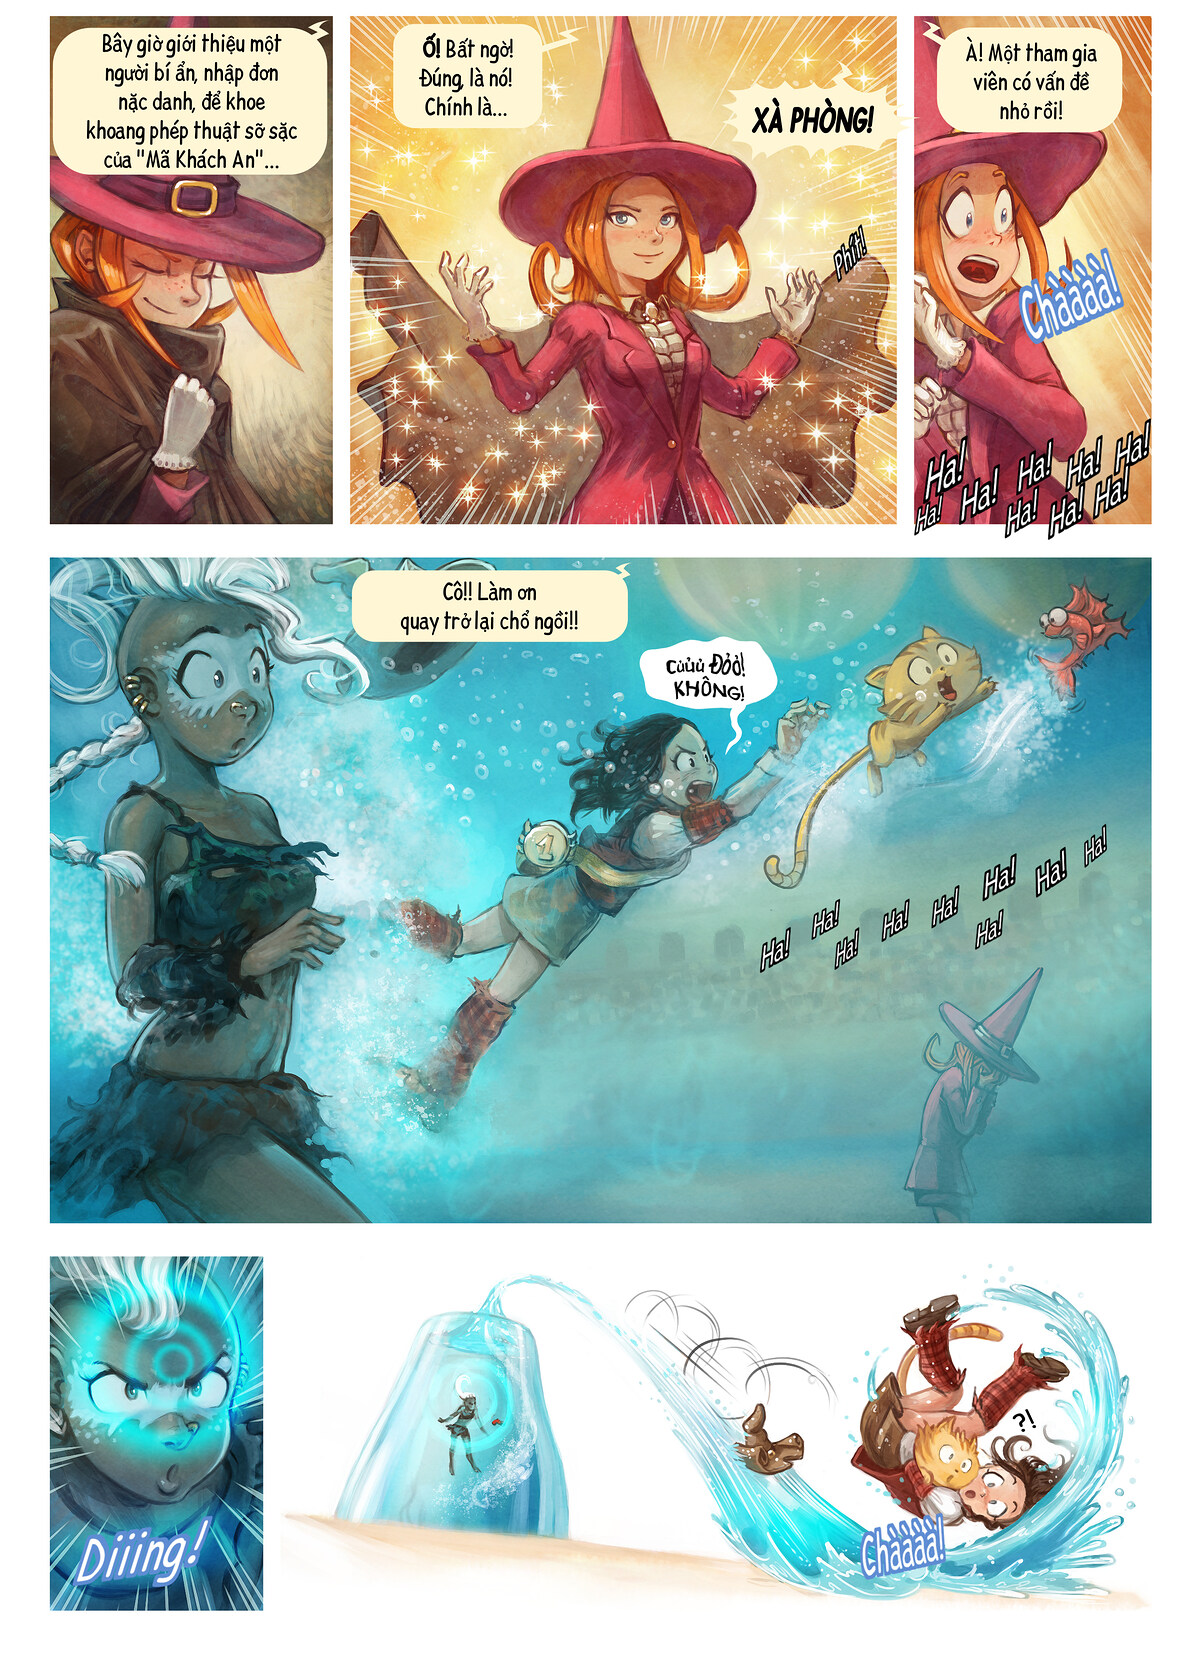 A webcomic page of Pepper&Carrot, Tập 21 [vi], trang 6